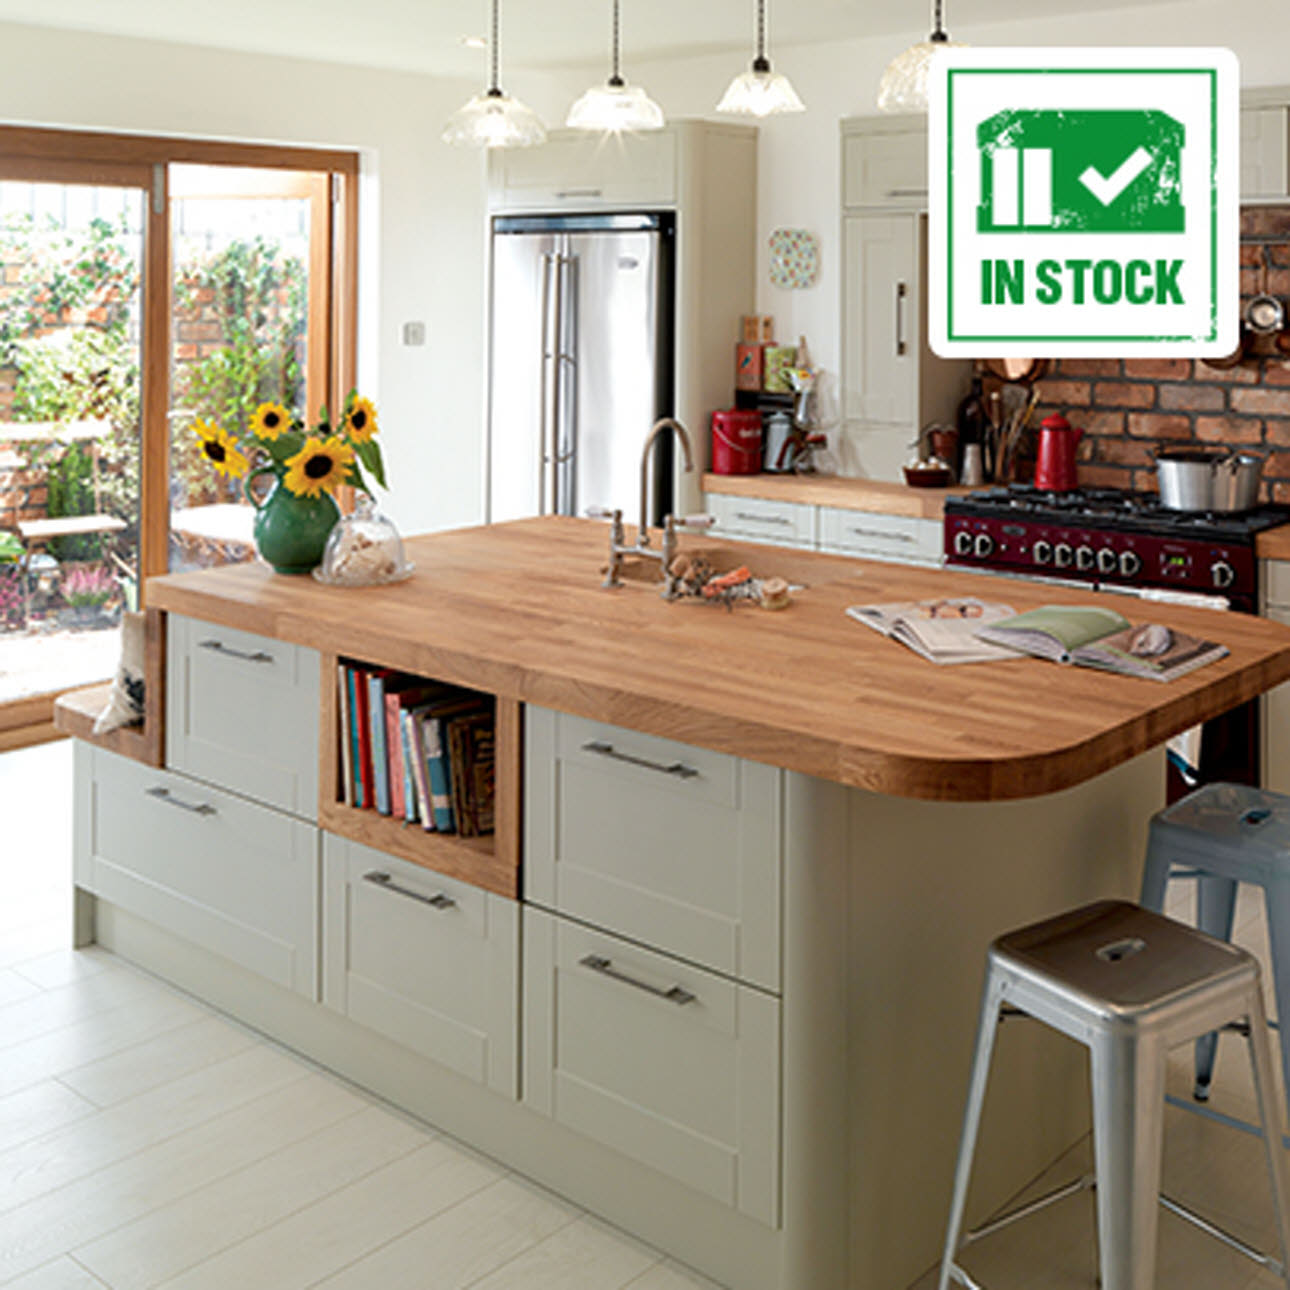 Our Range of In Stock Kitchens | Magnet Trade